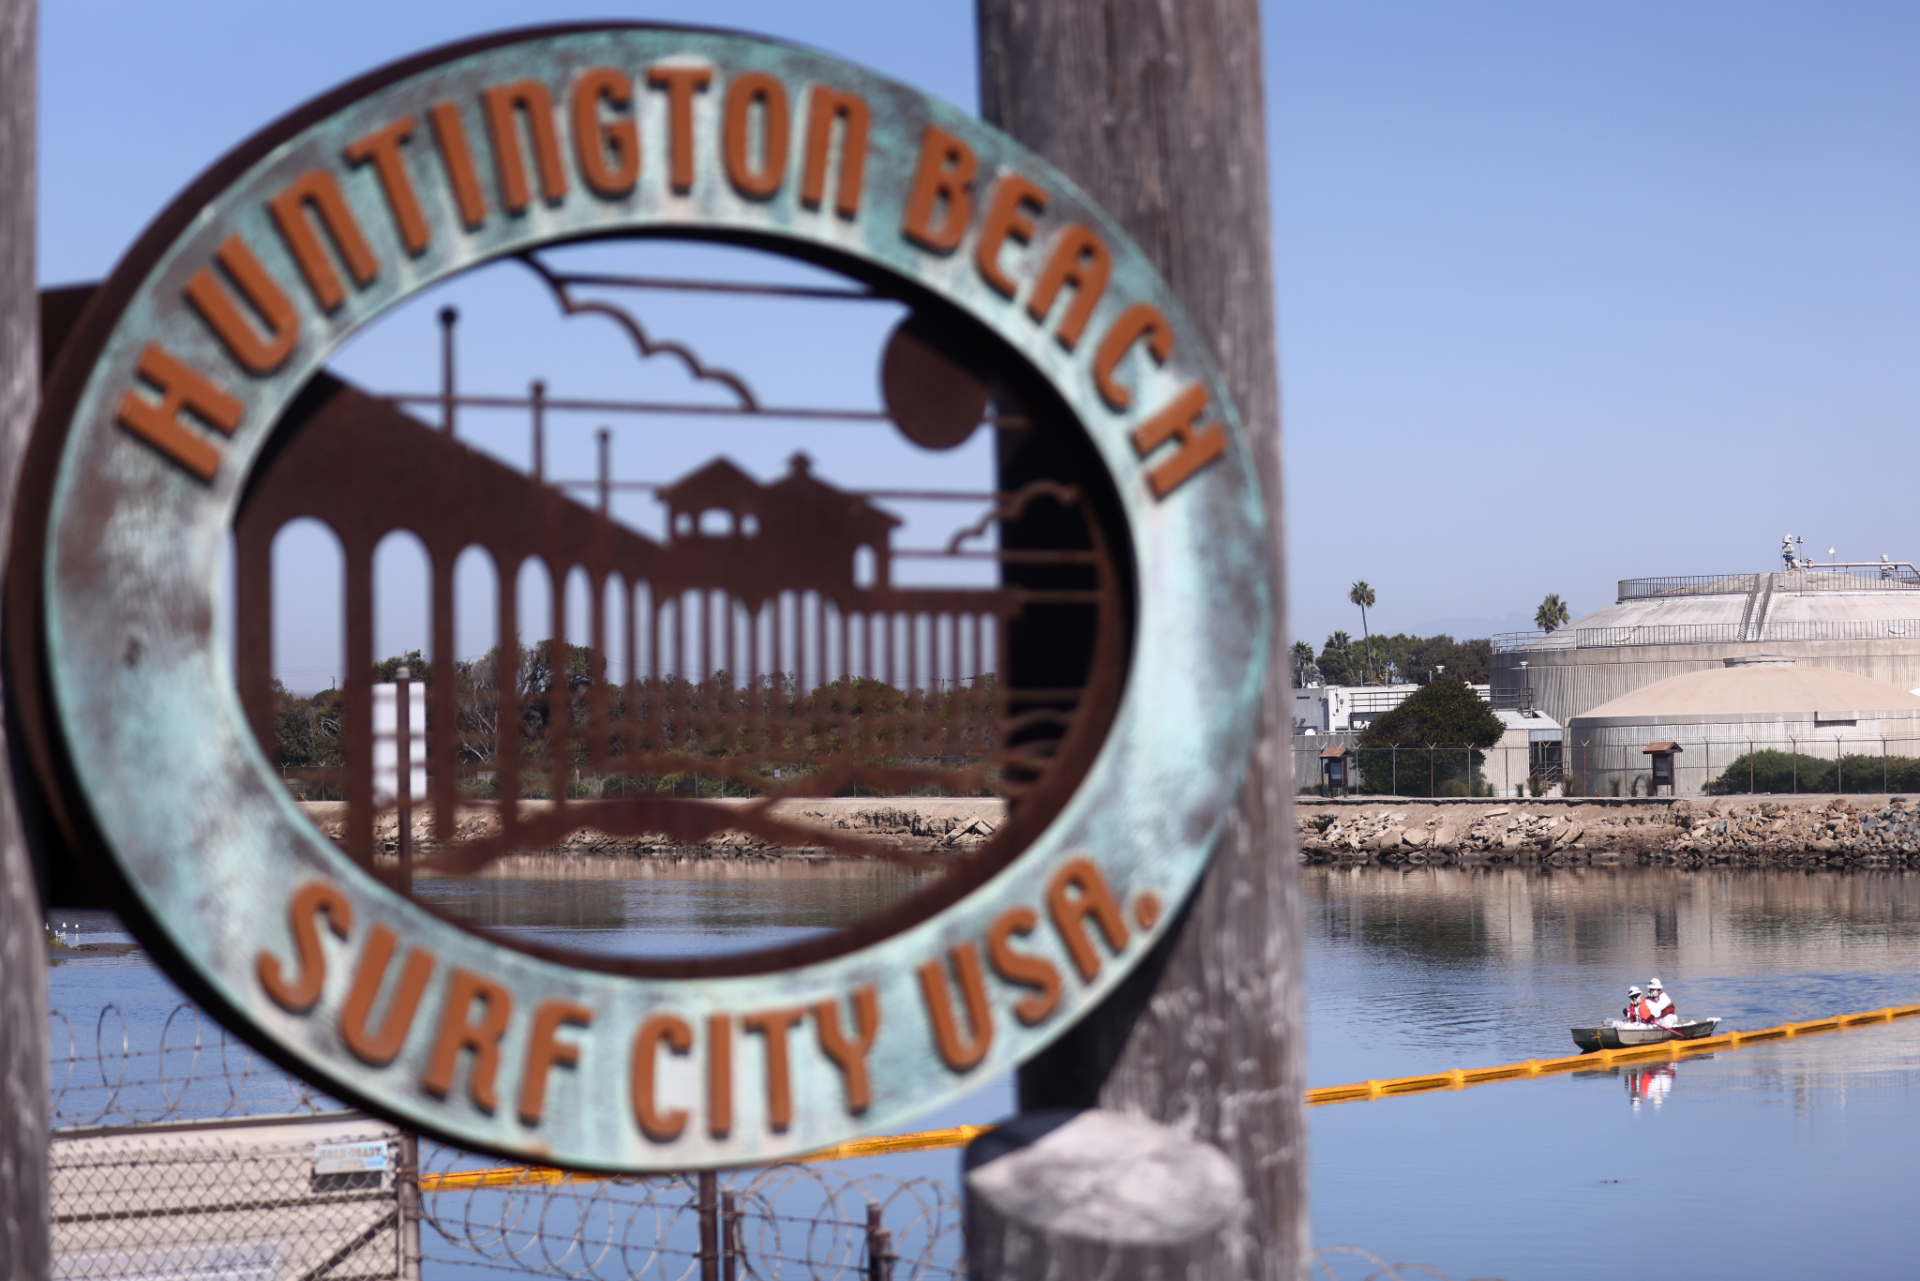 """A close-up of a sign saying """"Huntington Beach, Surf City USA"""" with water in the background, and a small boat on the water with two people inside."""